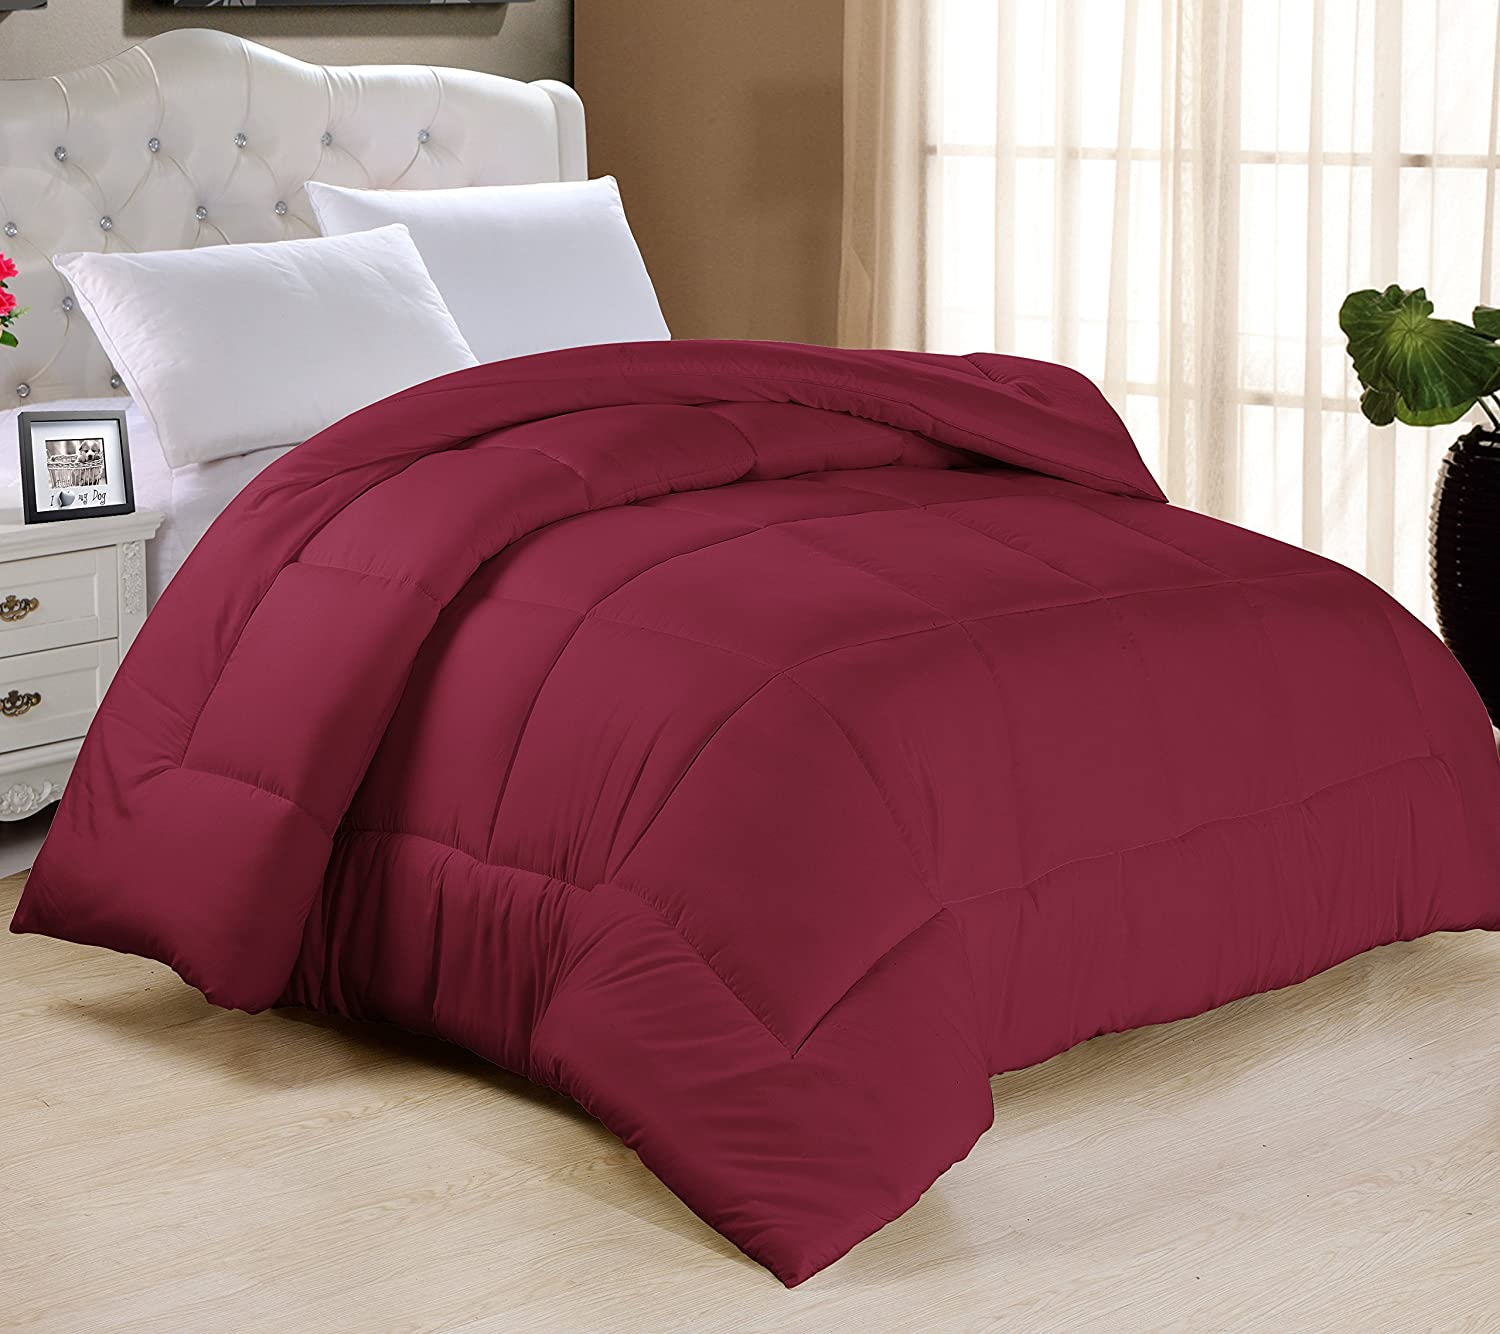 full chocolate alternative com kinglinen down queen king comforter set kitchen home amazon dp